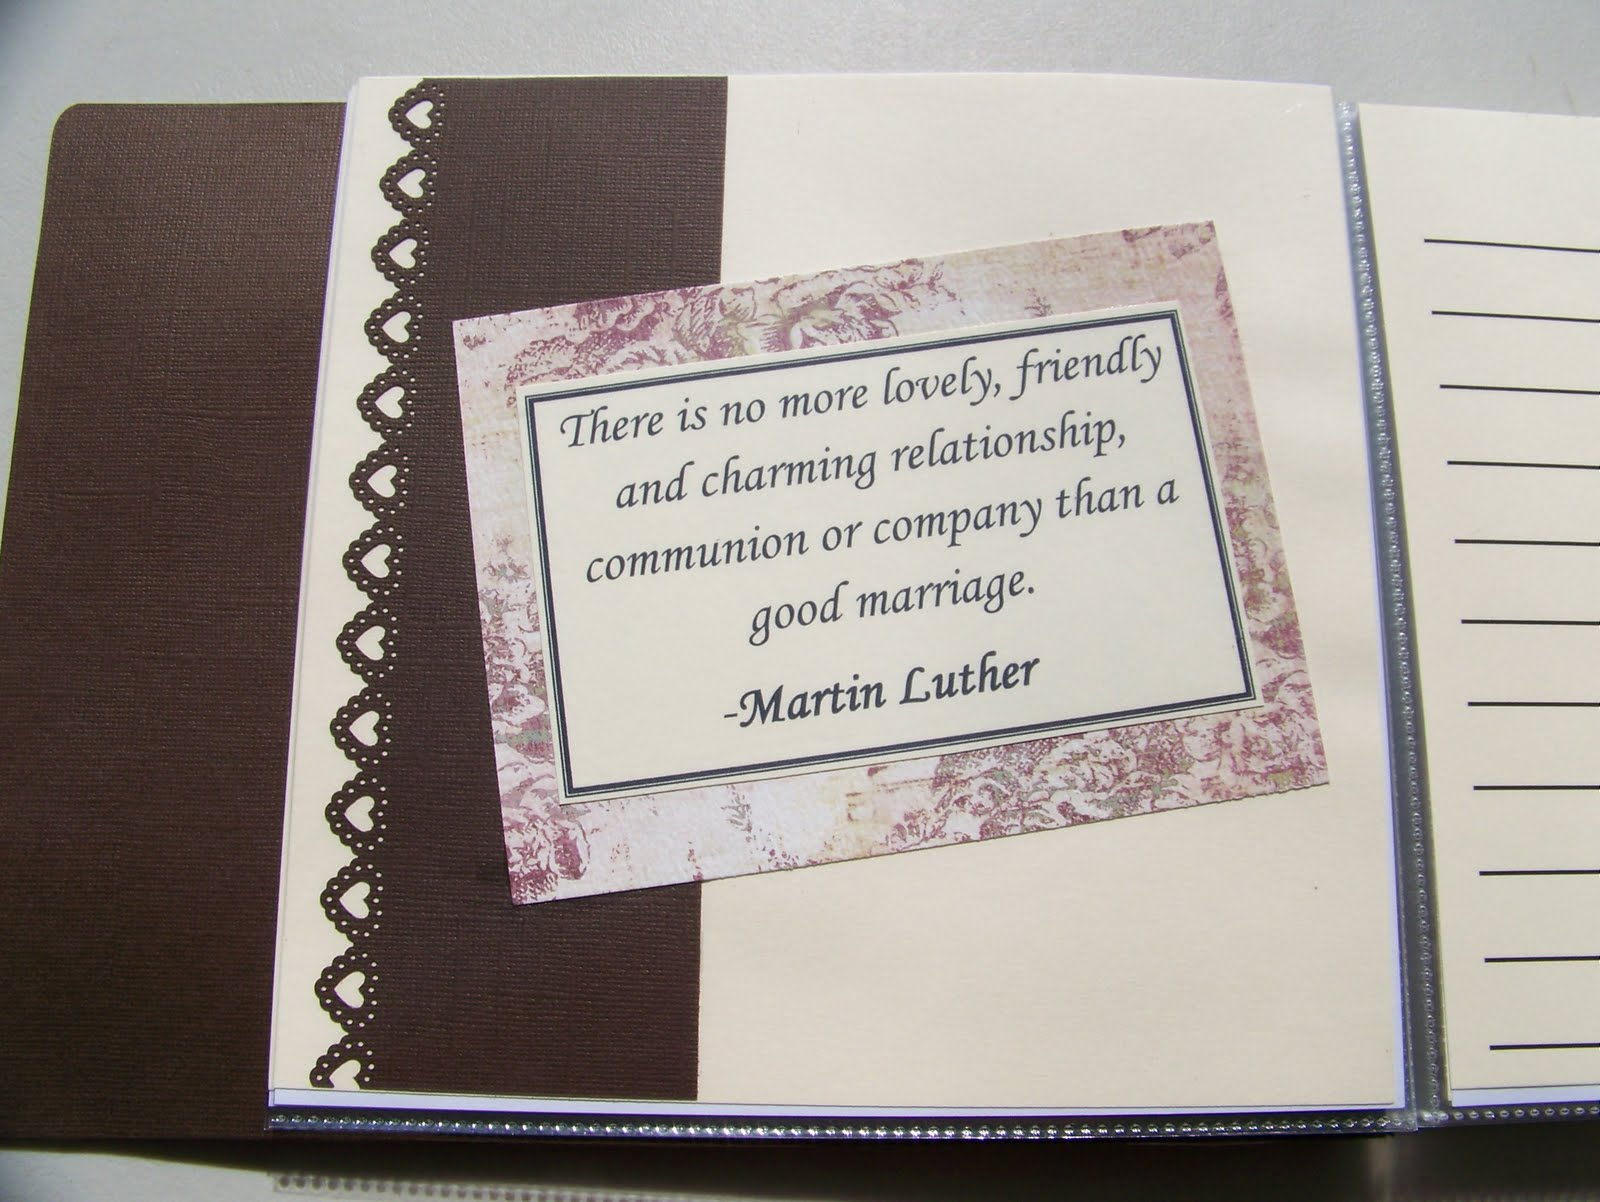 Wedding Shower Gift Card Verses : There are 6 pages that I used these quotes.